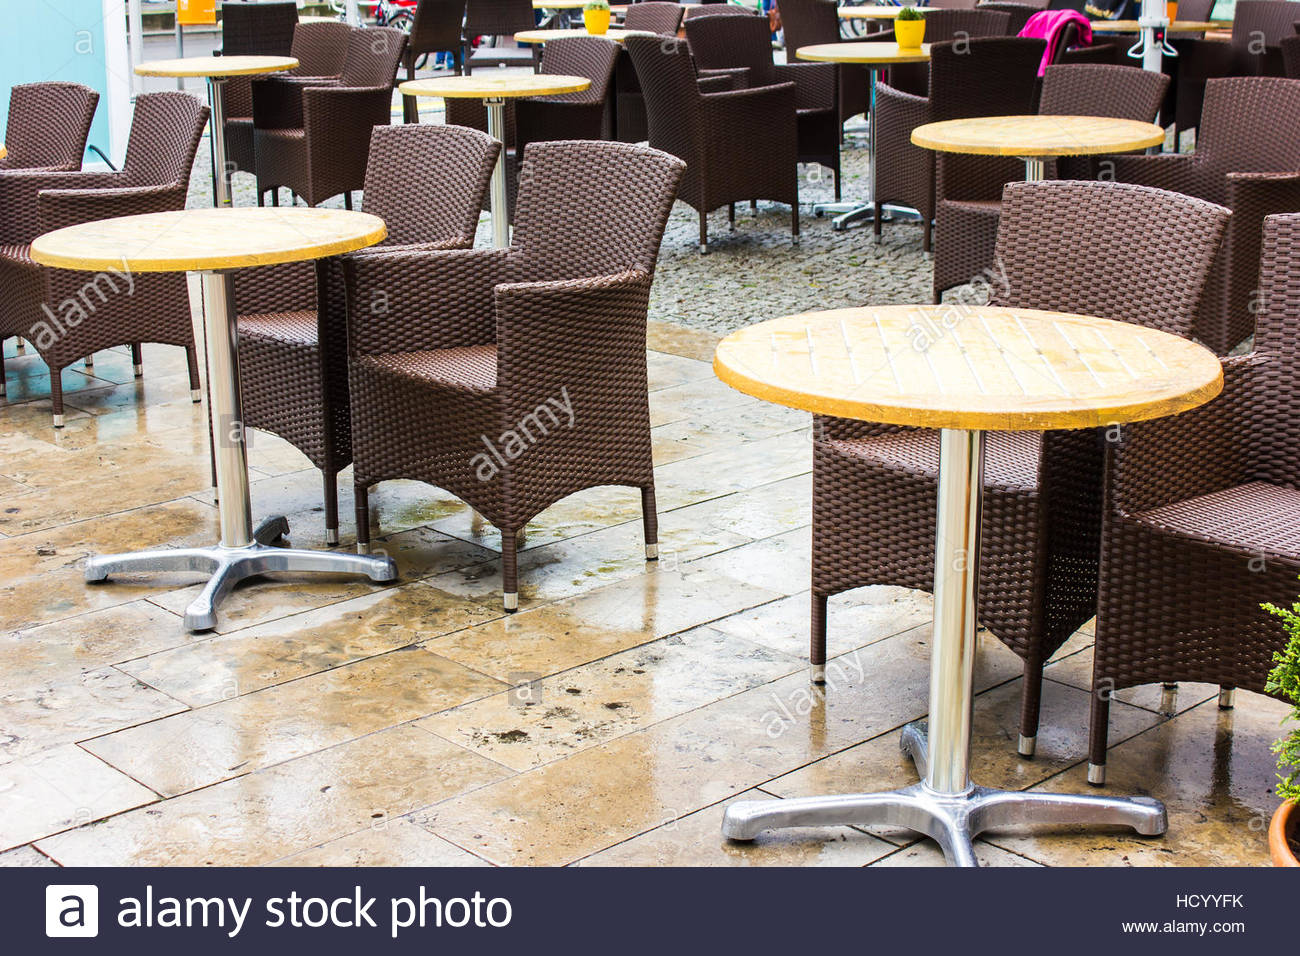 Chairs tables outside coffee shop stock photos chairs tables outdoor cafe city rain berlin empty coffee shop outside while raining tables schairs outside geotapseo Gallery